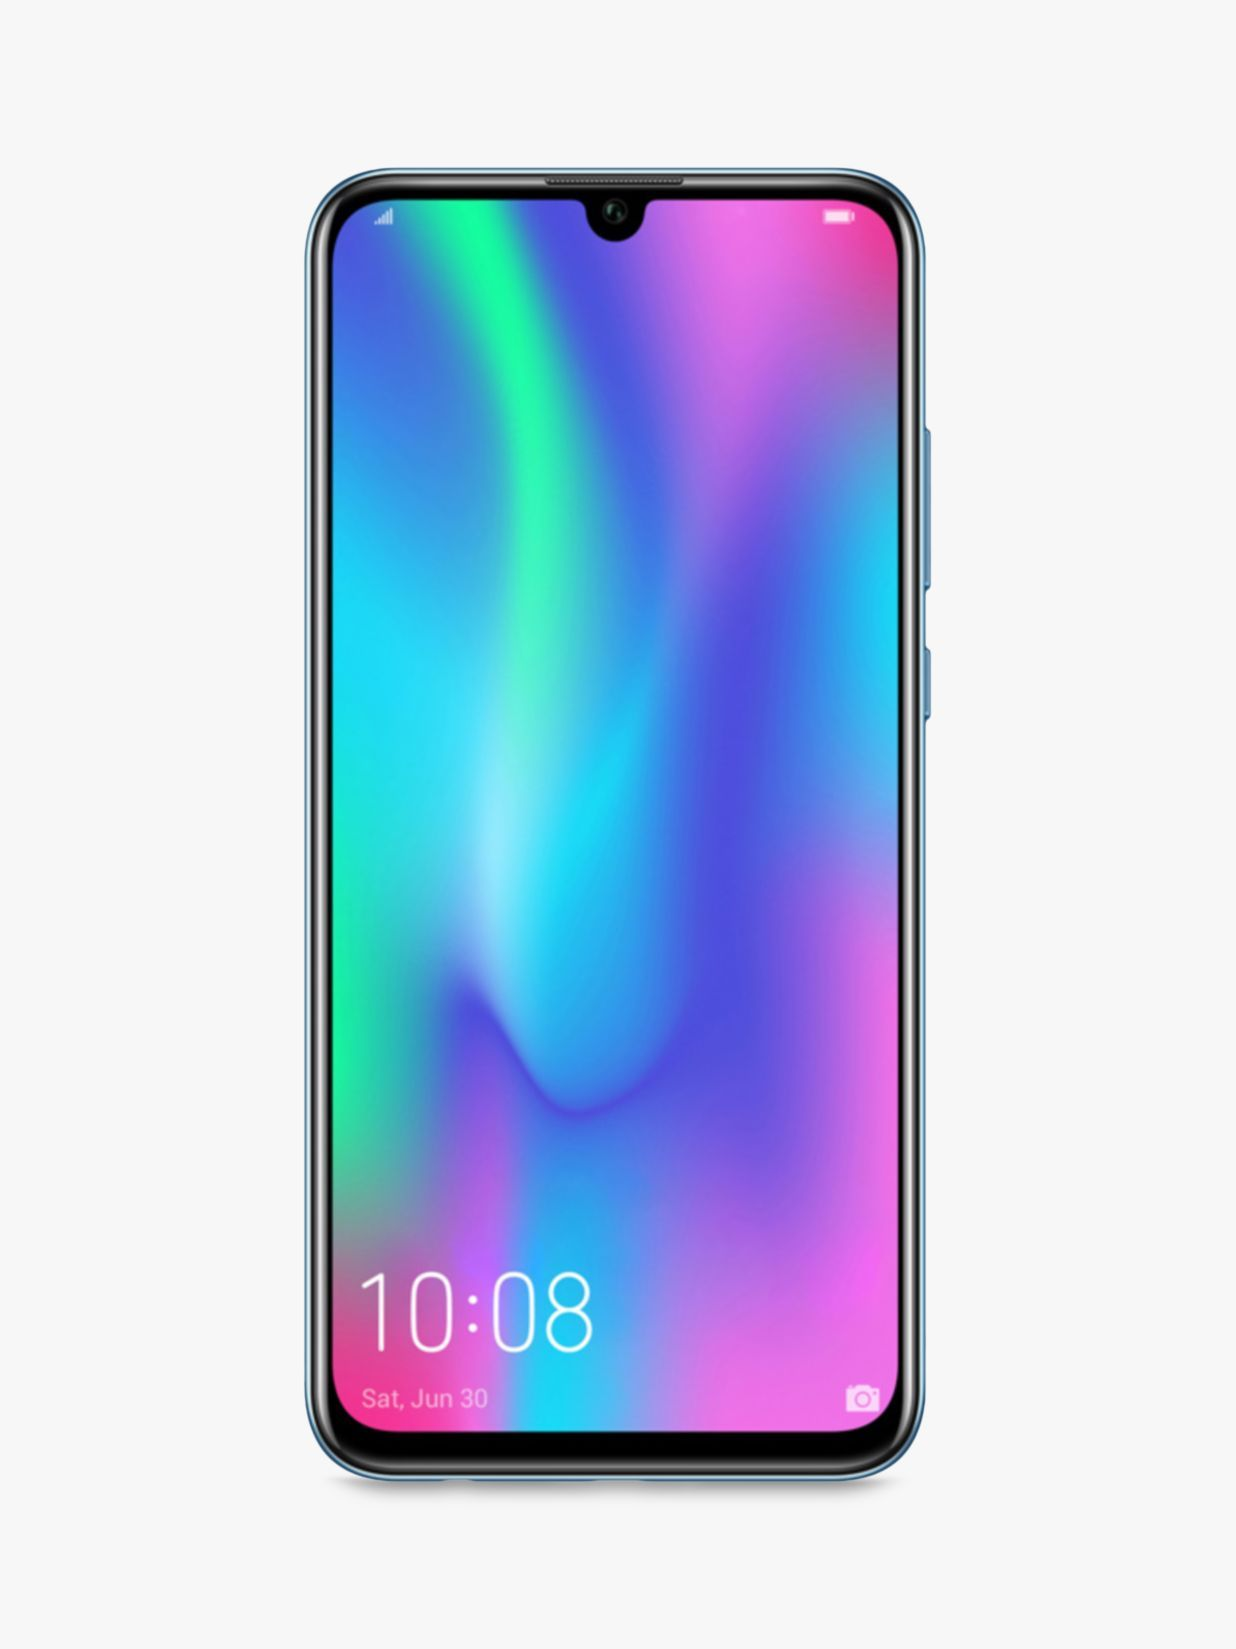 Honor 10 Lite Dual Sim Smartphone Android 6 21 4g Lte Sim Free 64gb Sapphire Blue Dual Sim Sims Smartphone